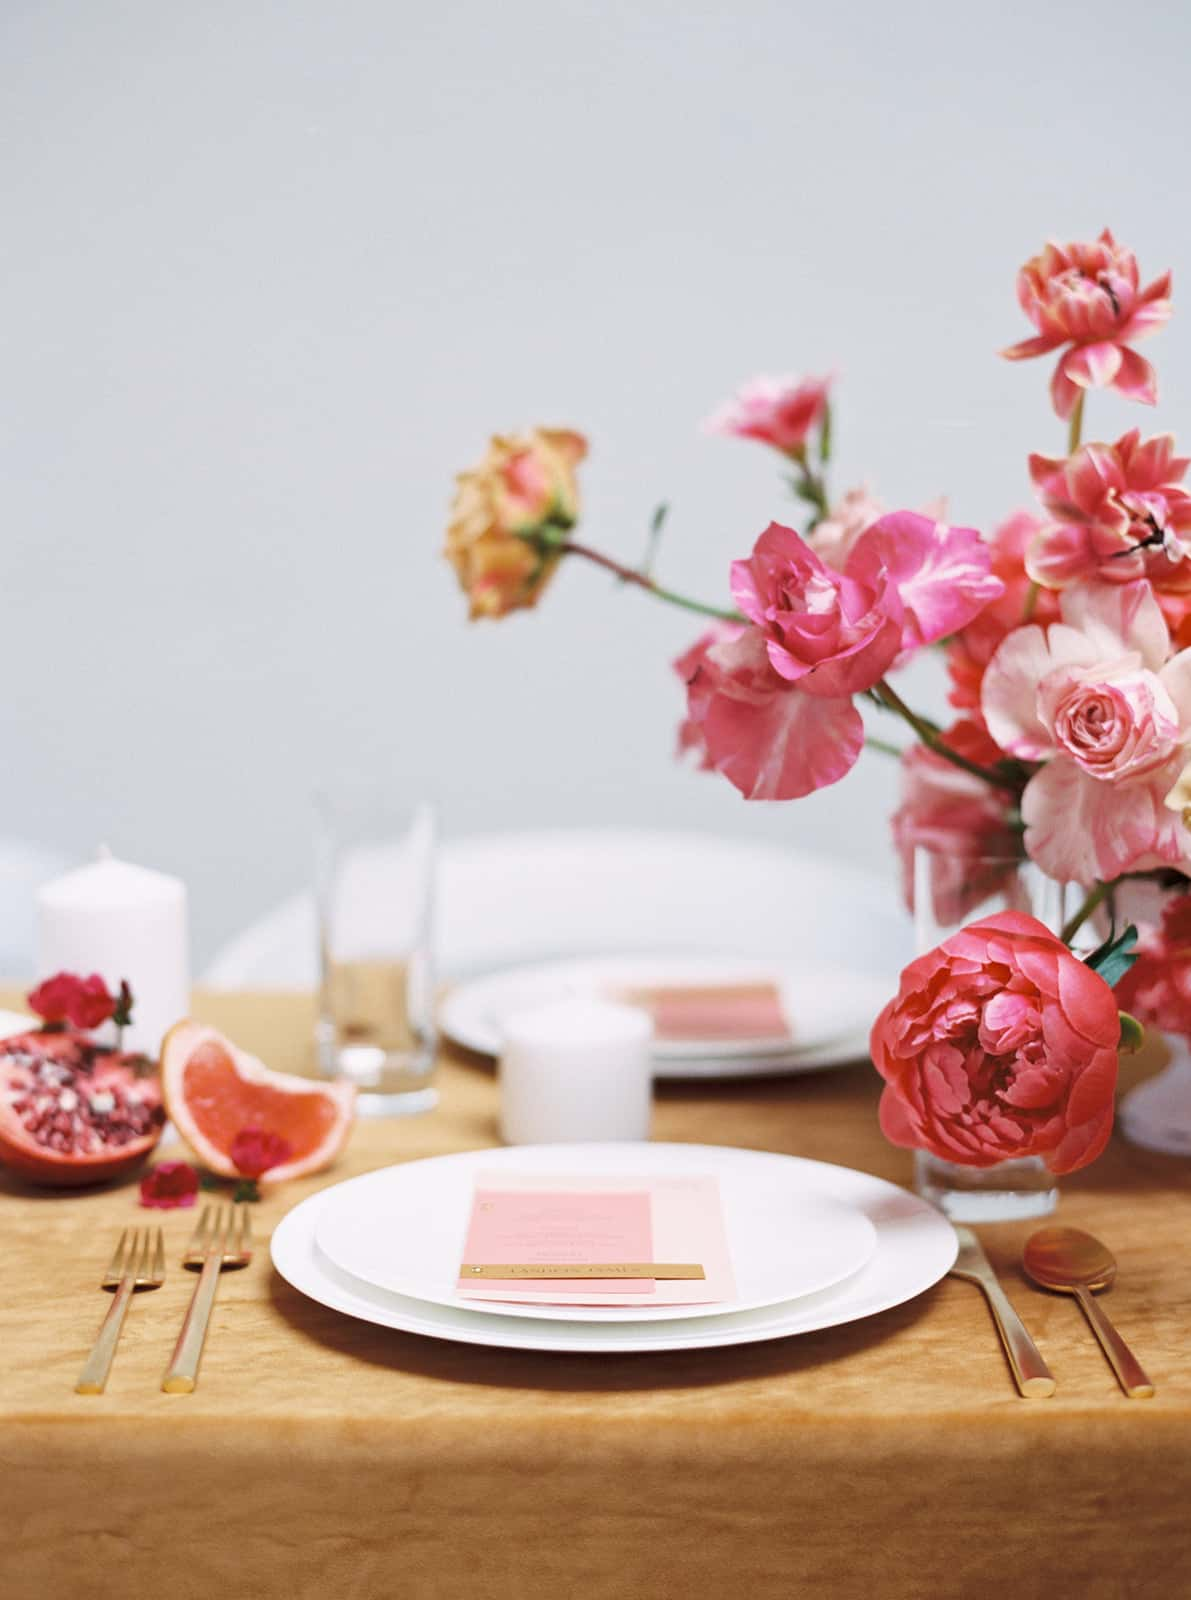 Wedding placesettings and florals designed by Color Theory Collective